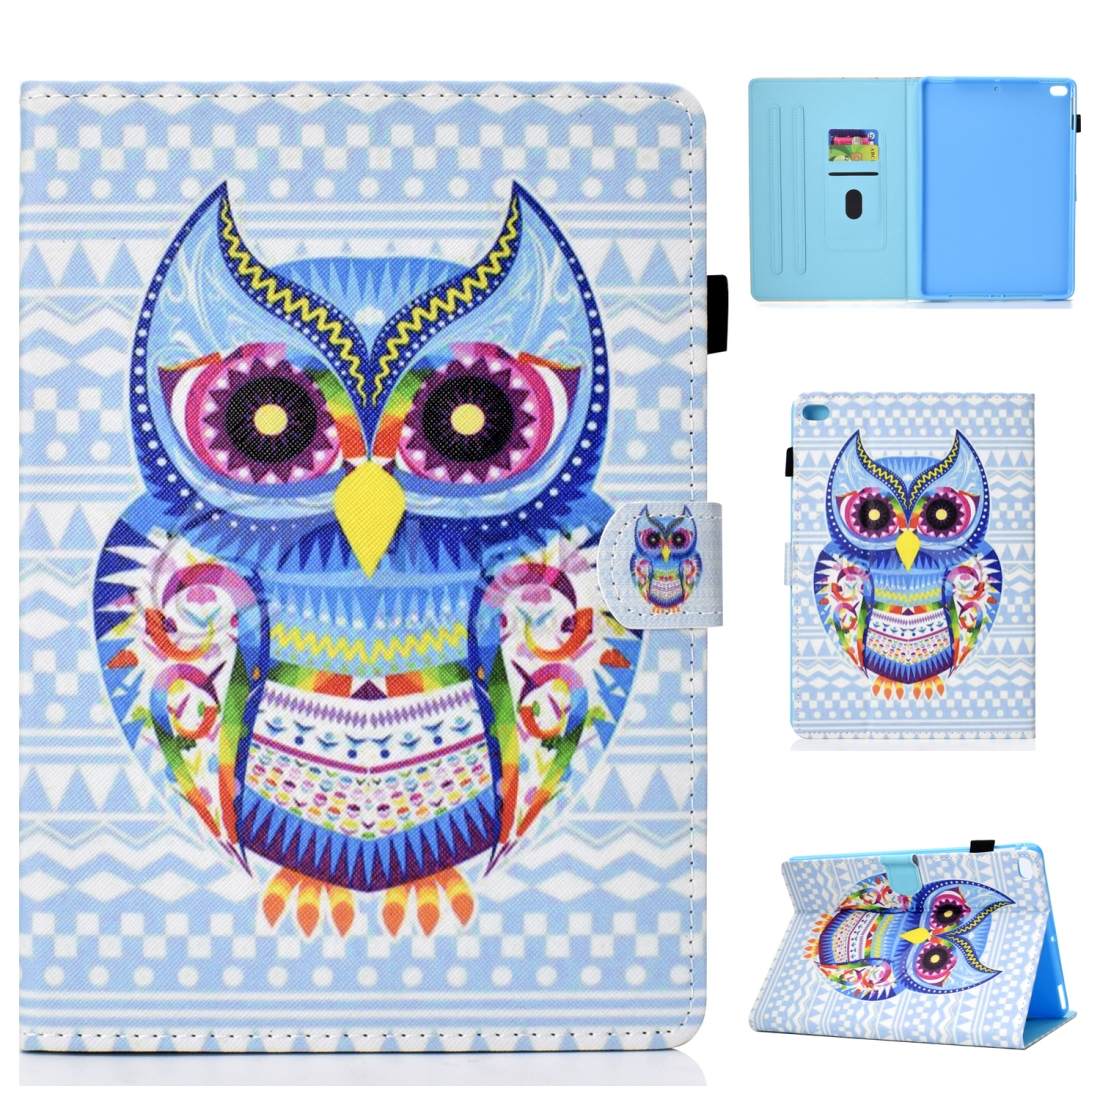 Case For iPad 5/ 6/ 8 Artistic Stitching Leather Case, with Sleeves (Artistic Owl)